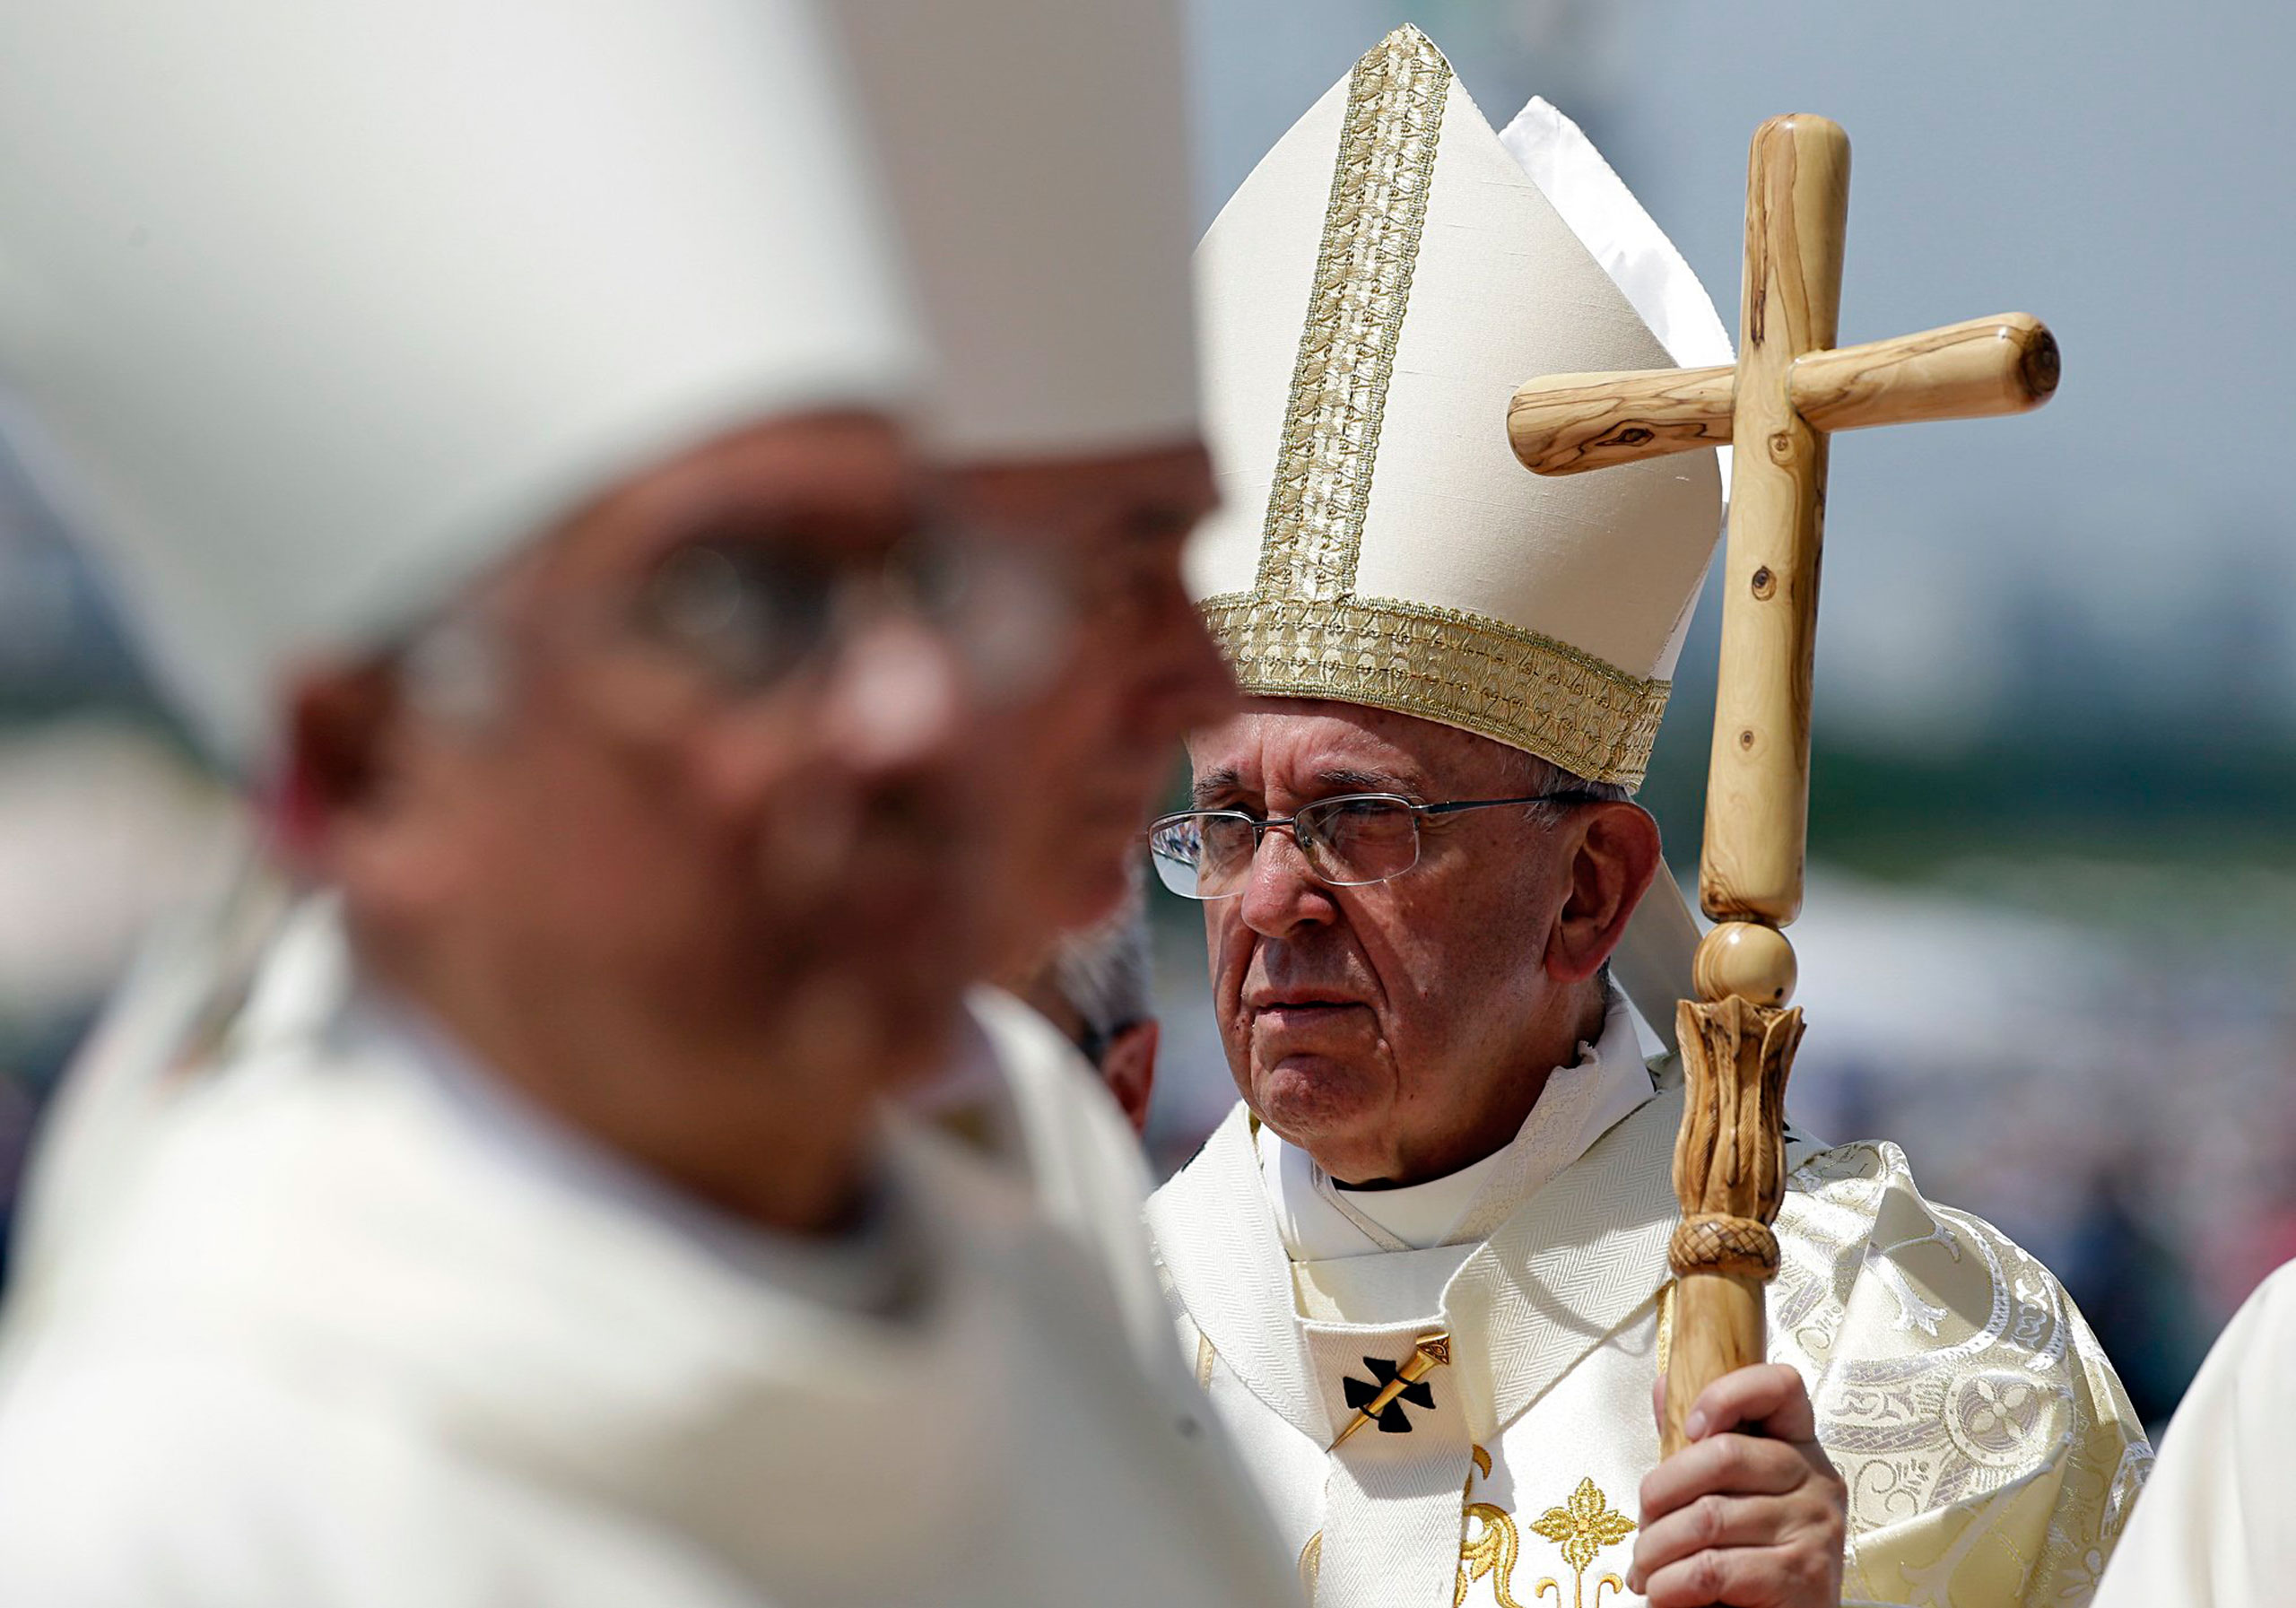 Pope Francis walks with his pastoral staff to celebrate a Mass in Guayaquil, Ecuador, on July 6, 2015.